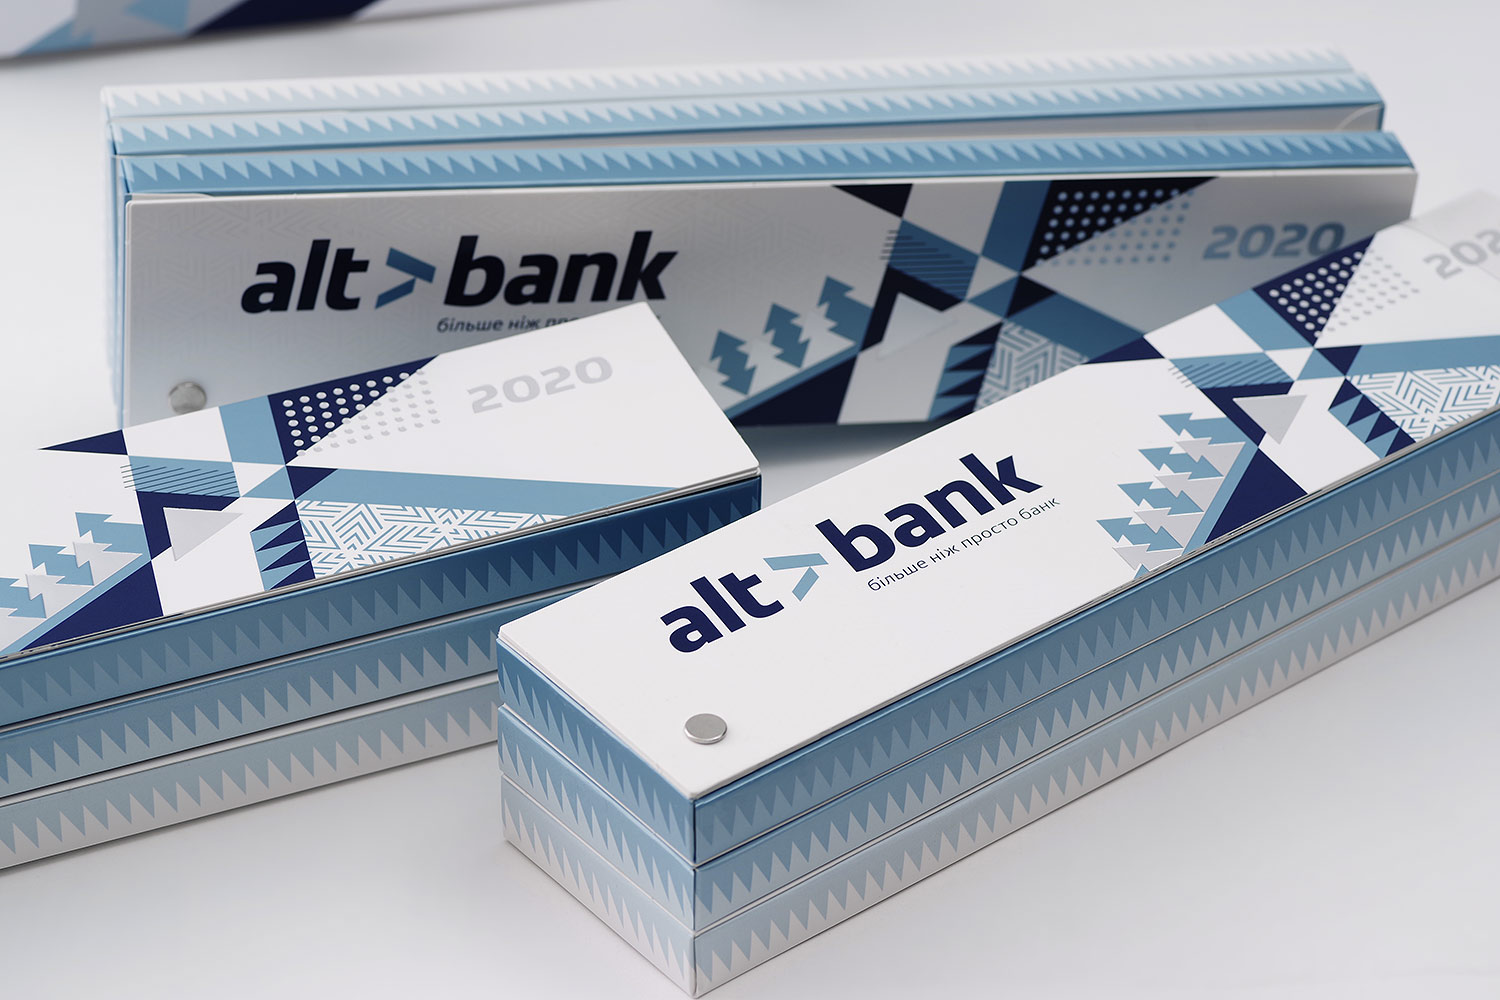 Unusual beautiful box for chocolate. Blue silver Pantone 8201, silver foil, holniten, fan shape packaging, geometric design with geometric illustration, Swedish design for Altbank bank.